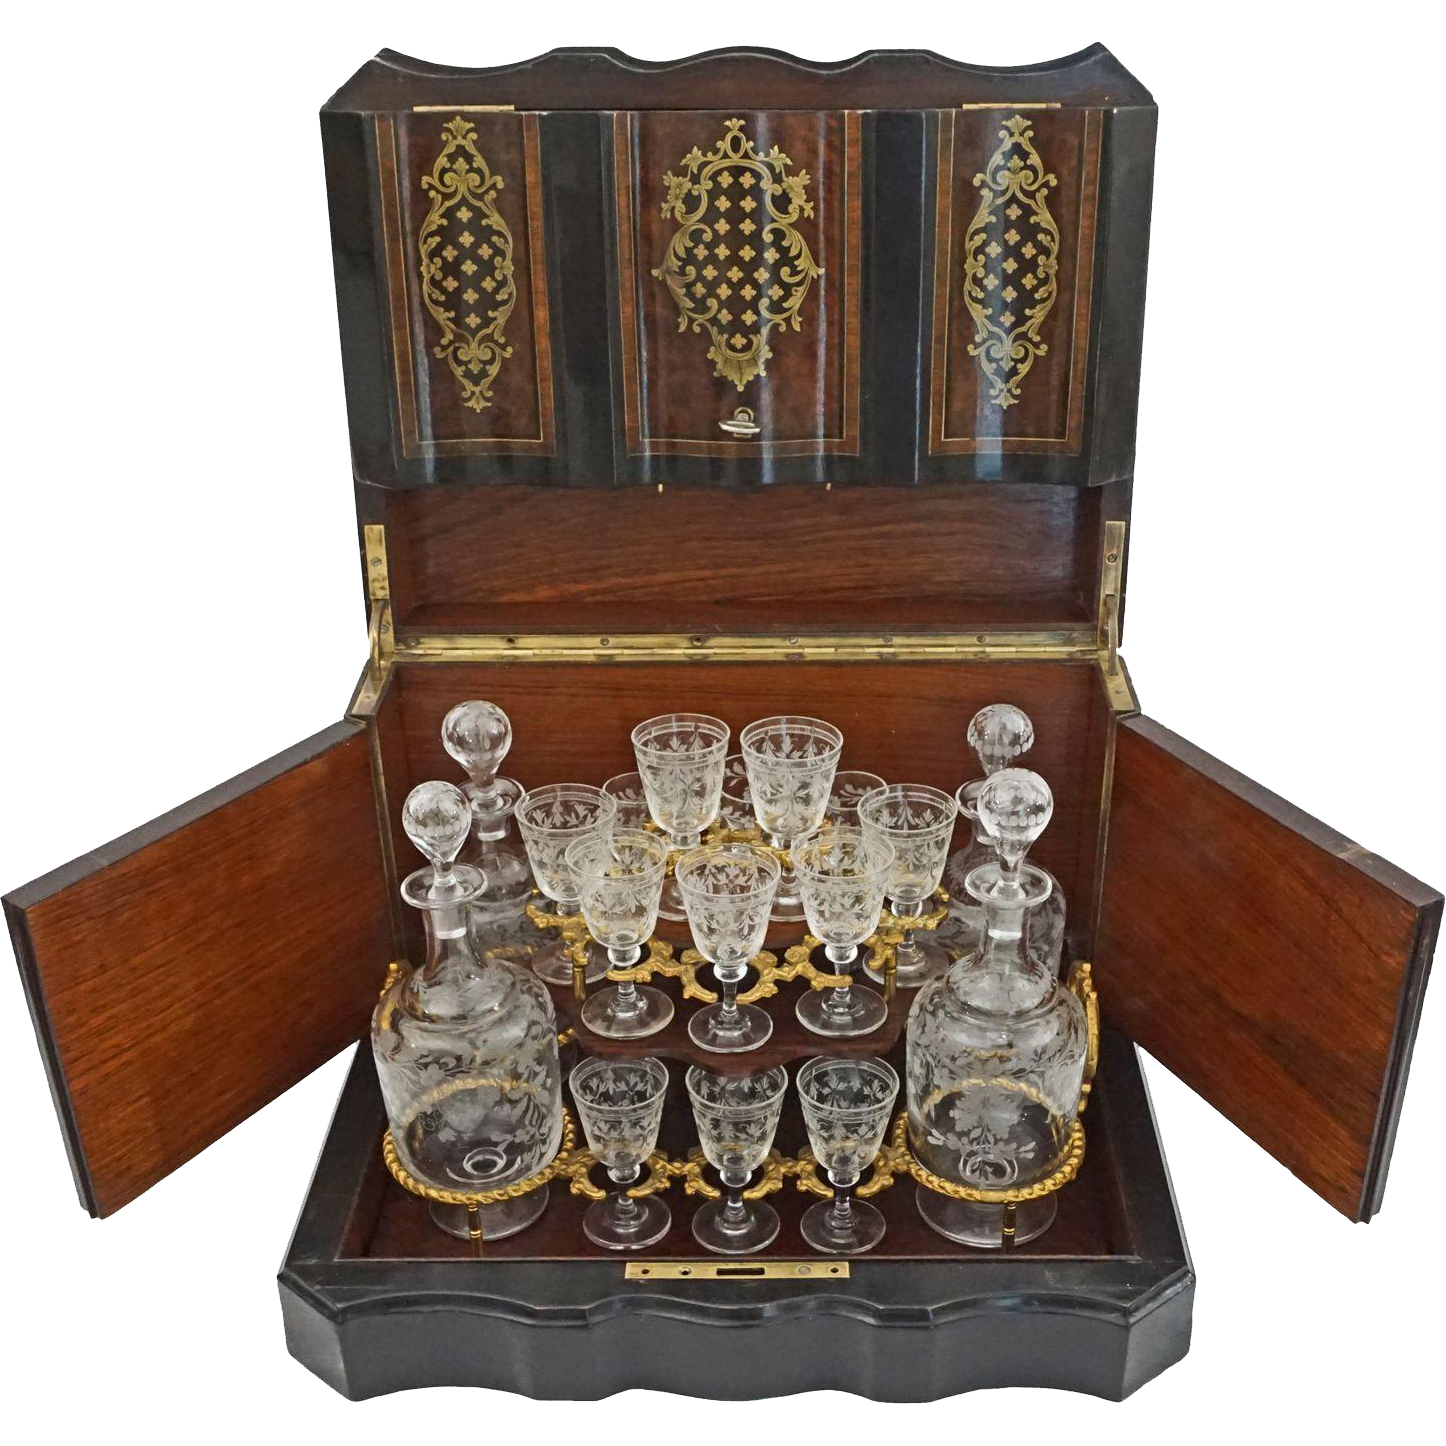 Napoleon III French Tantalus Four Decanter Cave a Liqueur Burled Ebonized Woods Gilt Bronze - 19th Century, France